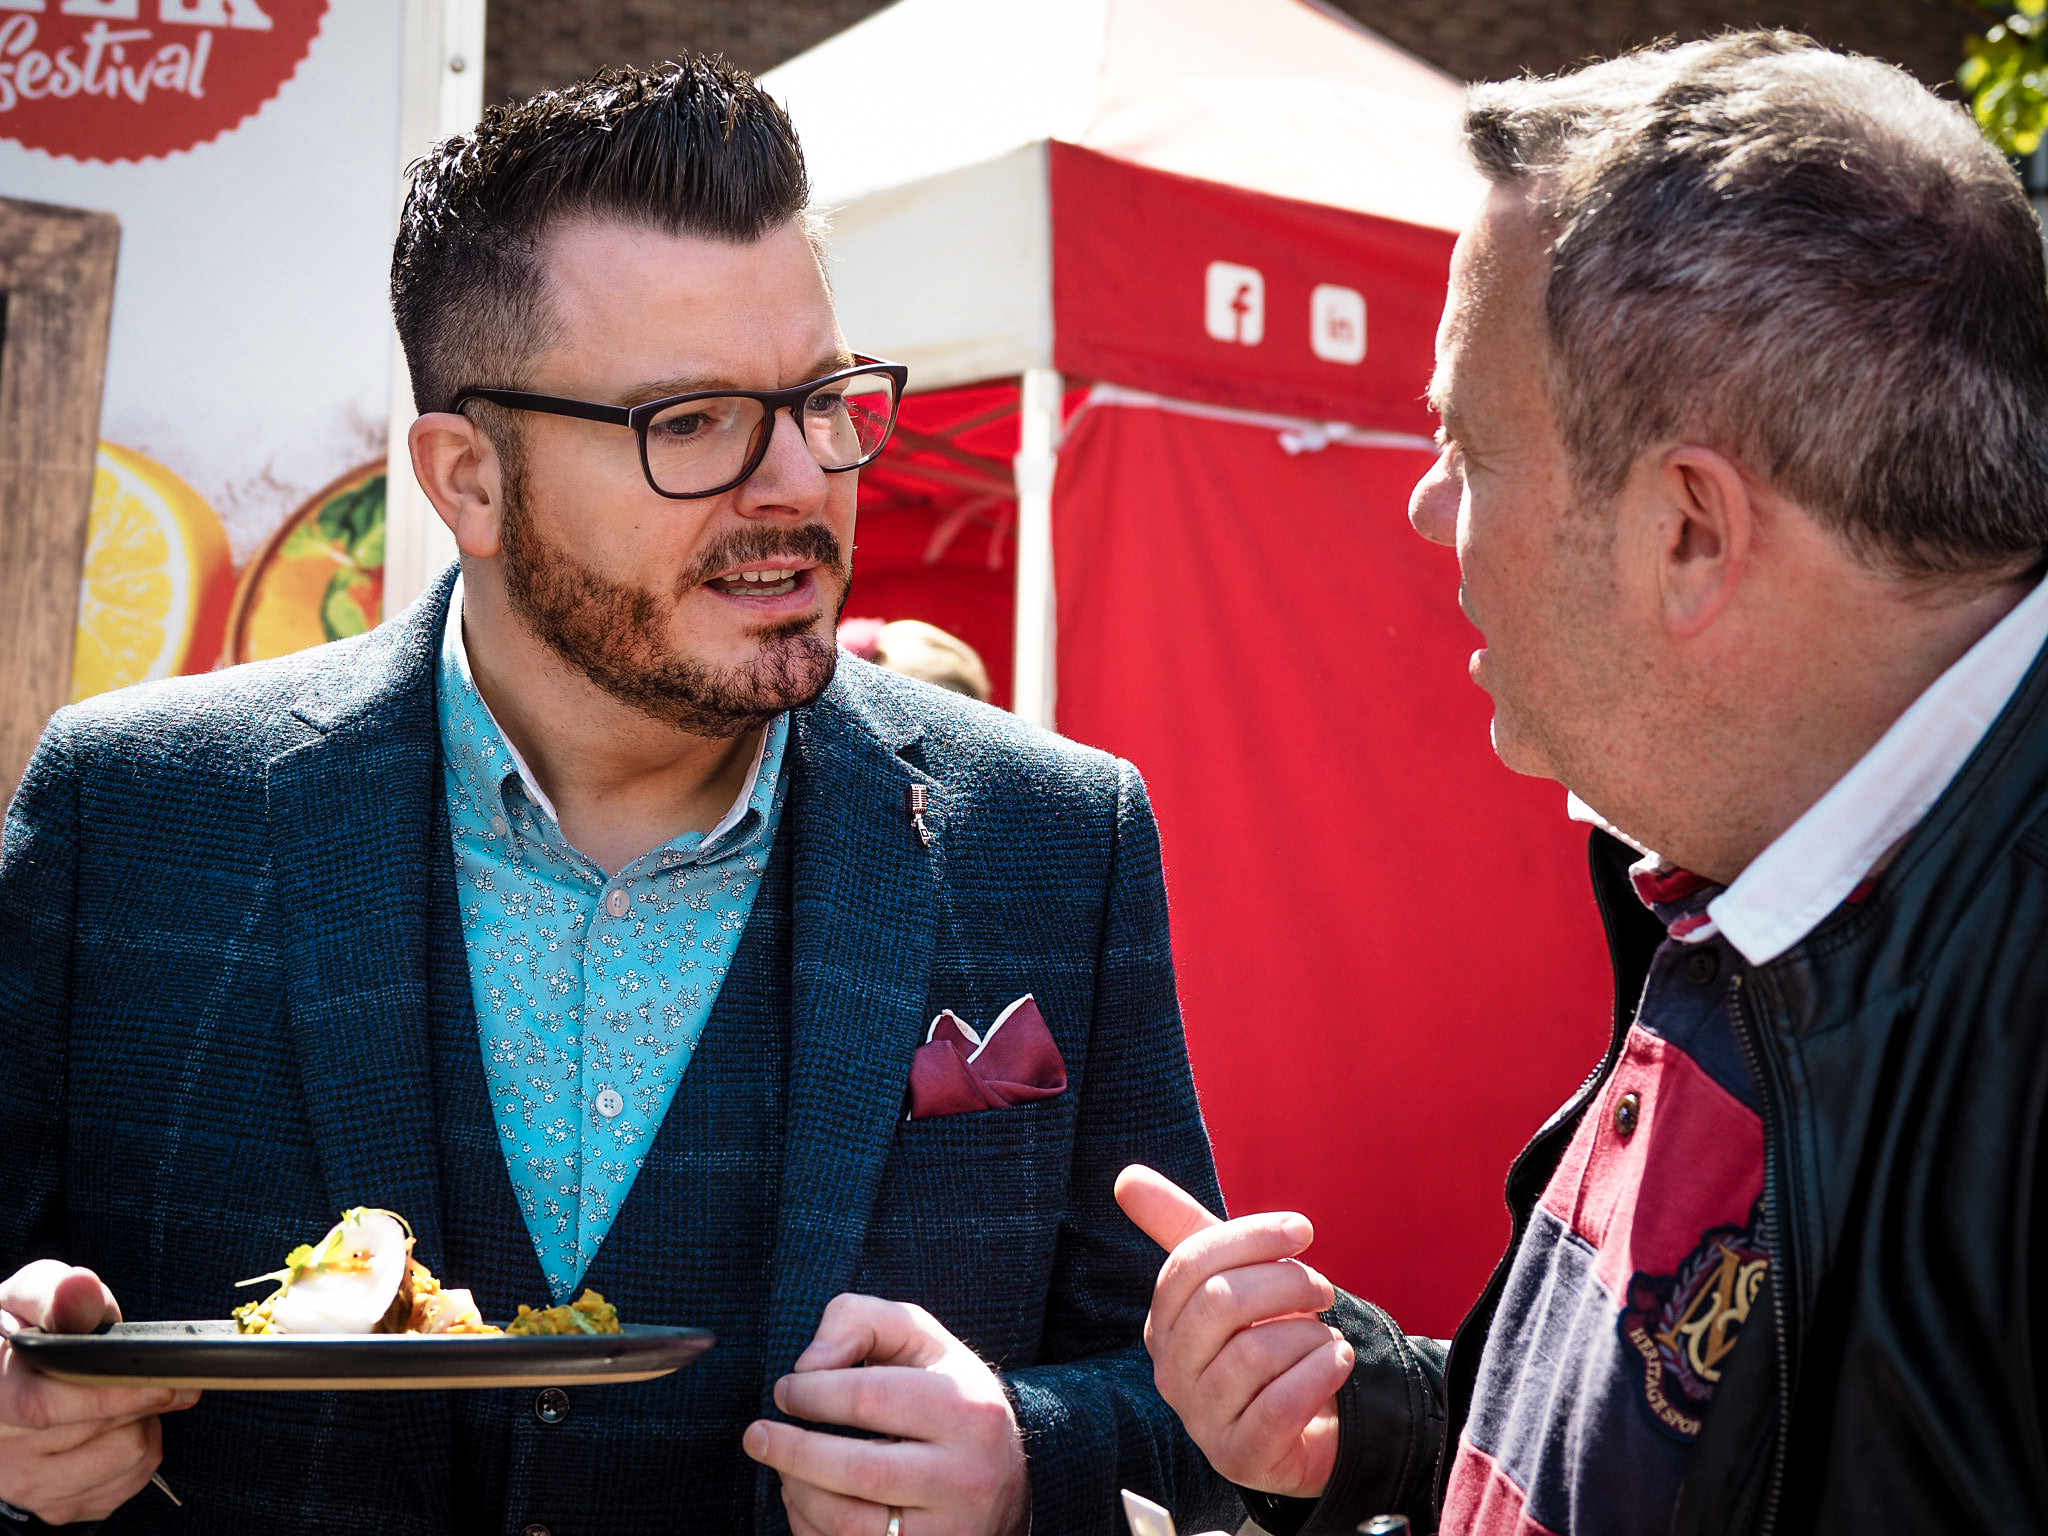 Coventry Food Festival 2019